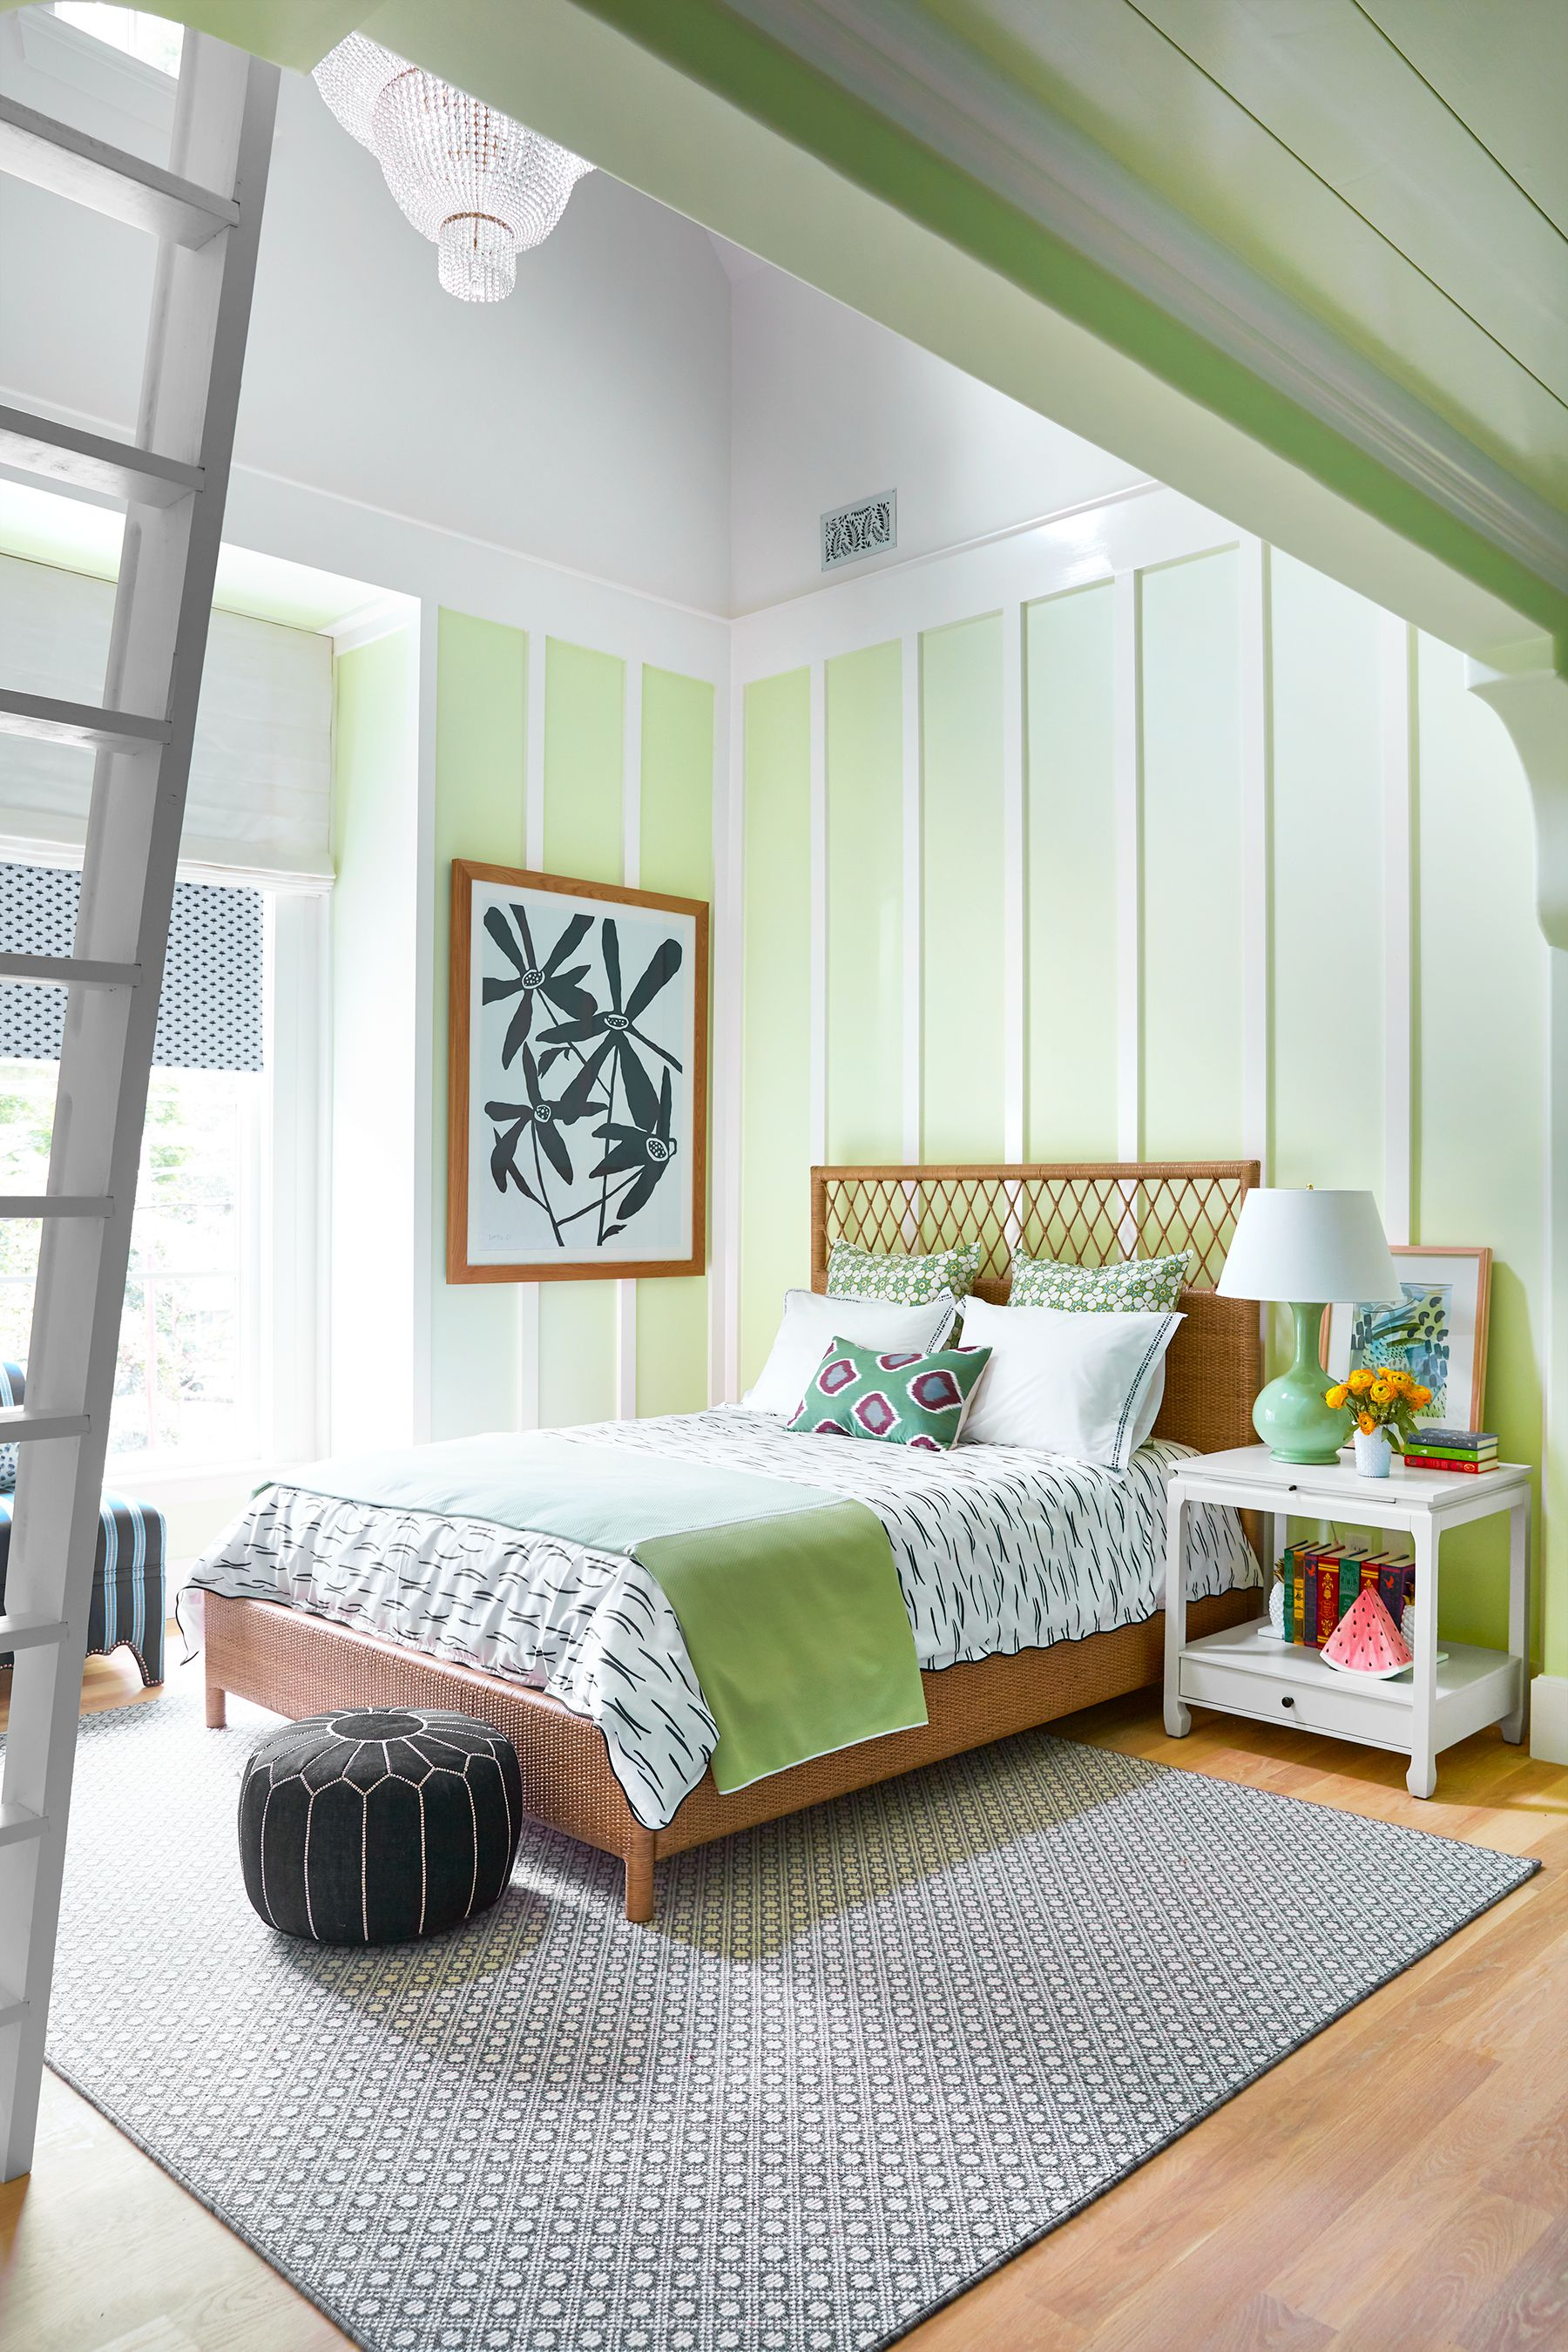 8 Stylish Loft Bedroom Ideas - Clever Design Tips for Studios